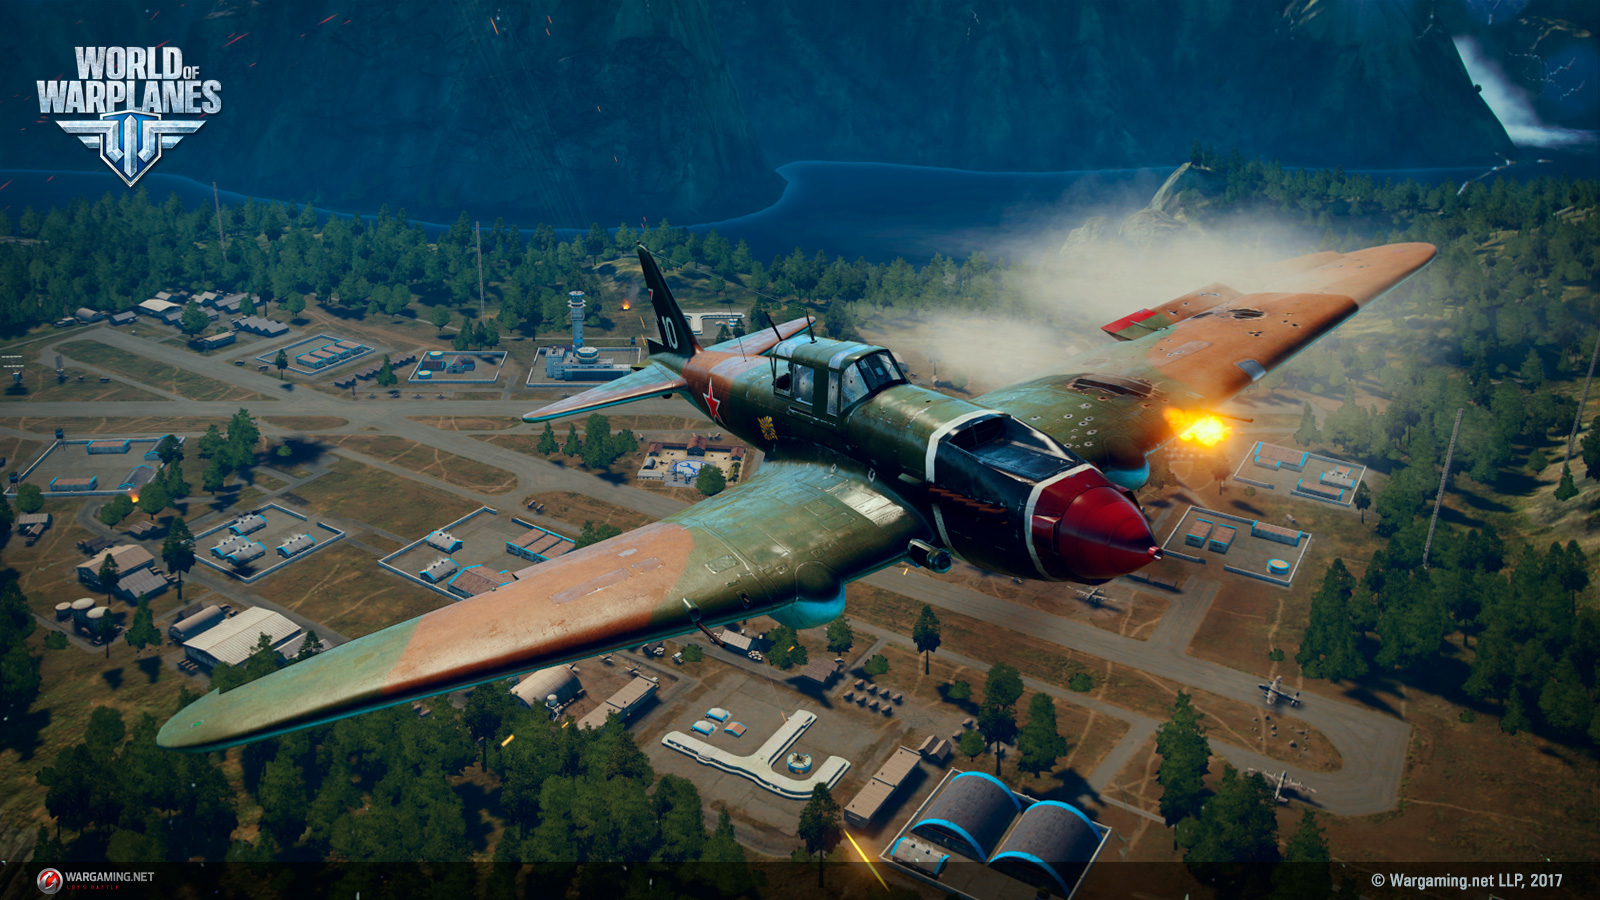 Plane Fighting Games >> World Of Warplanes